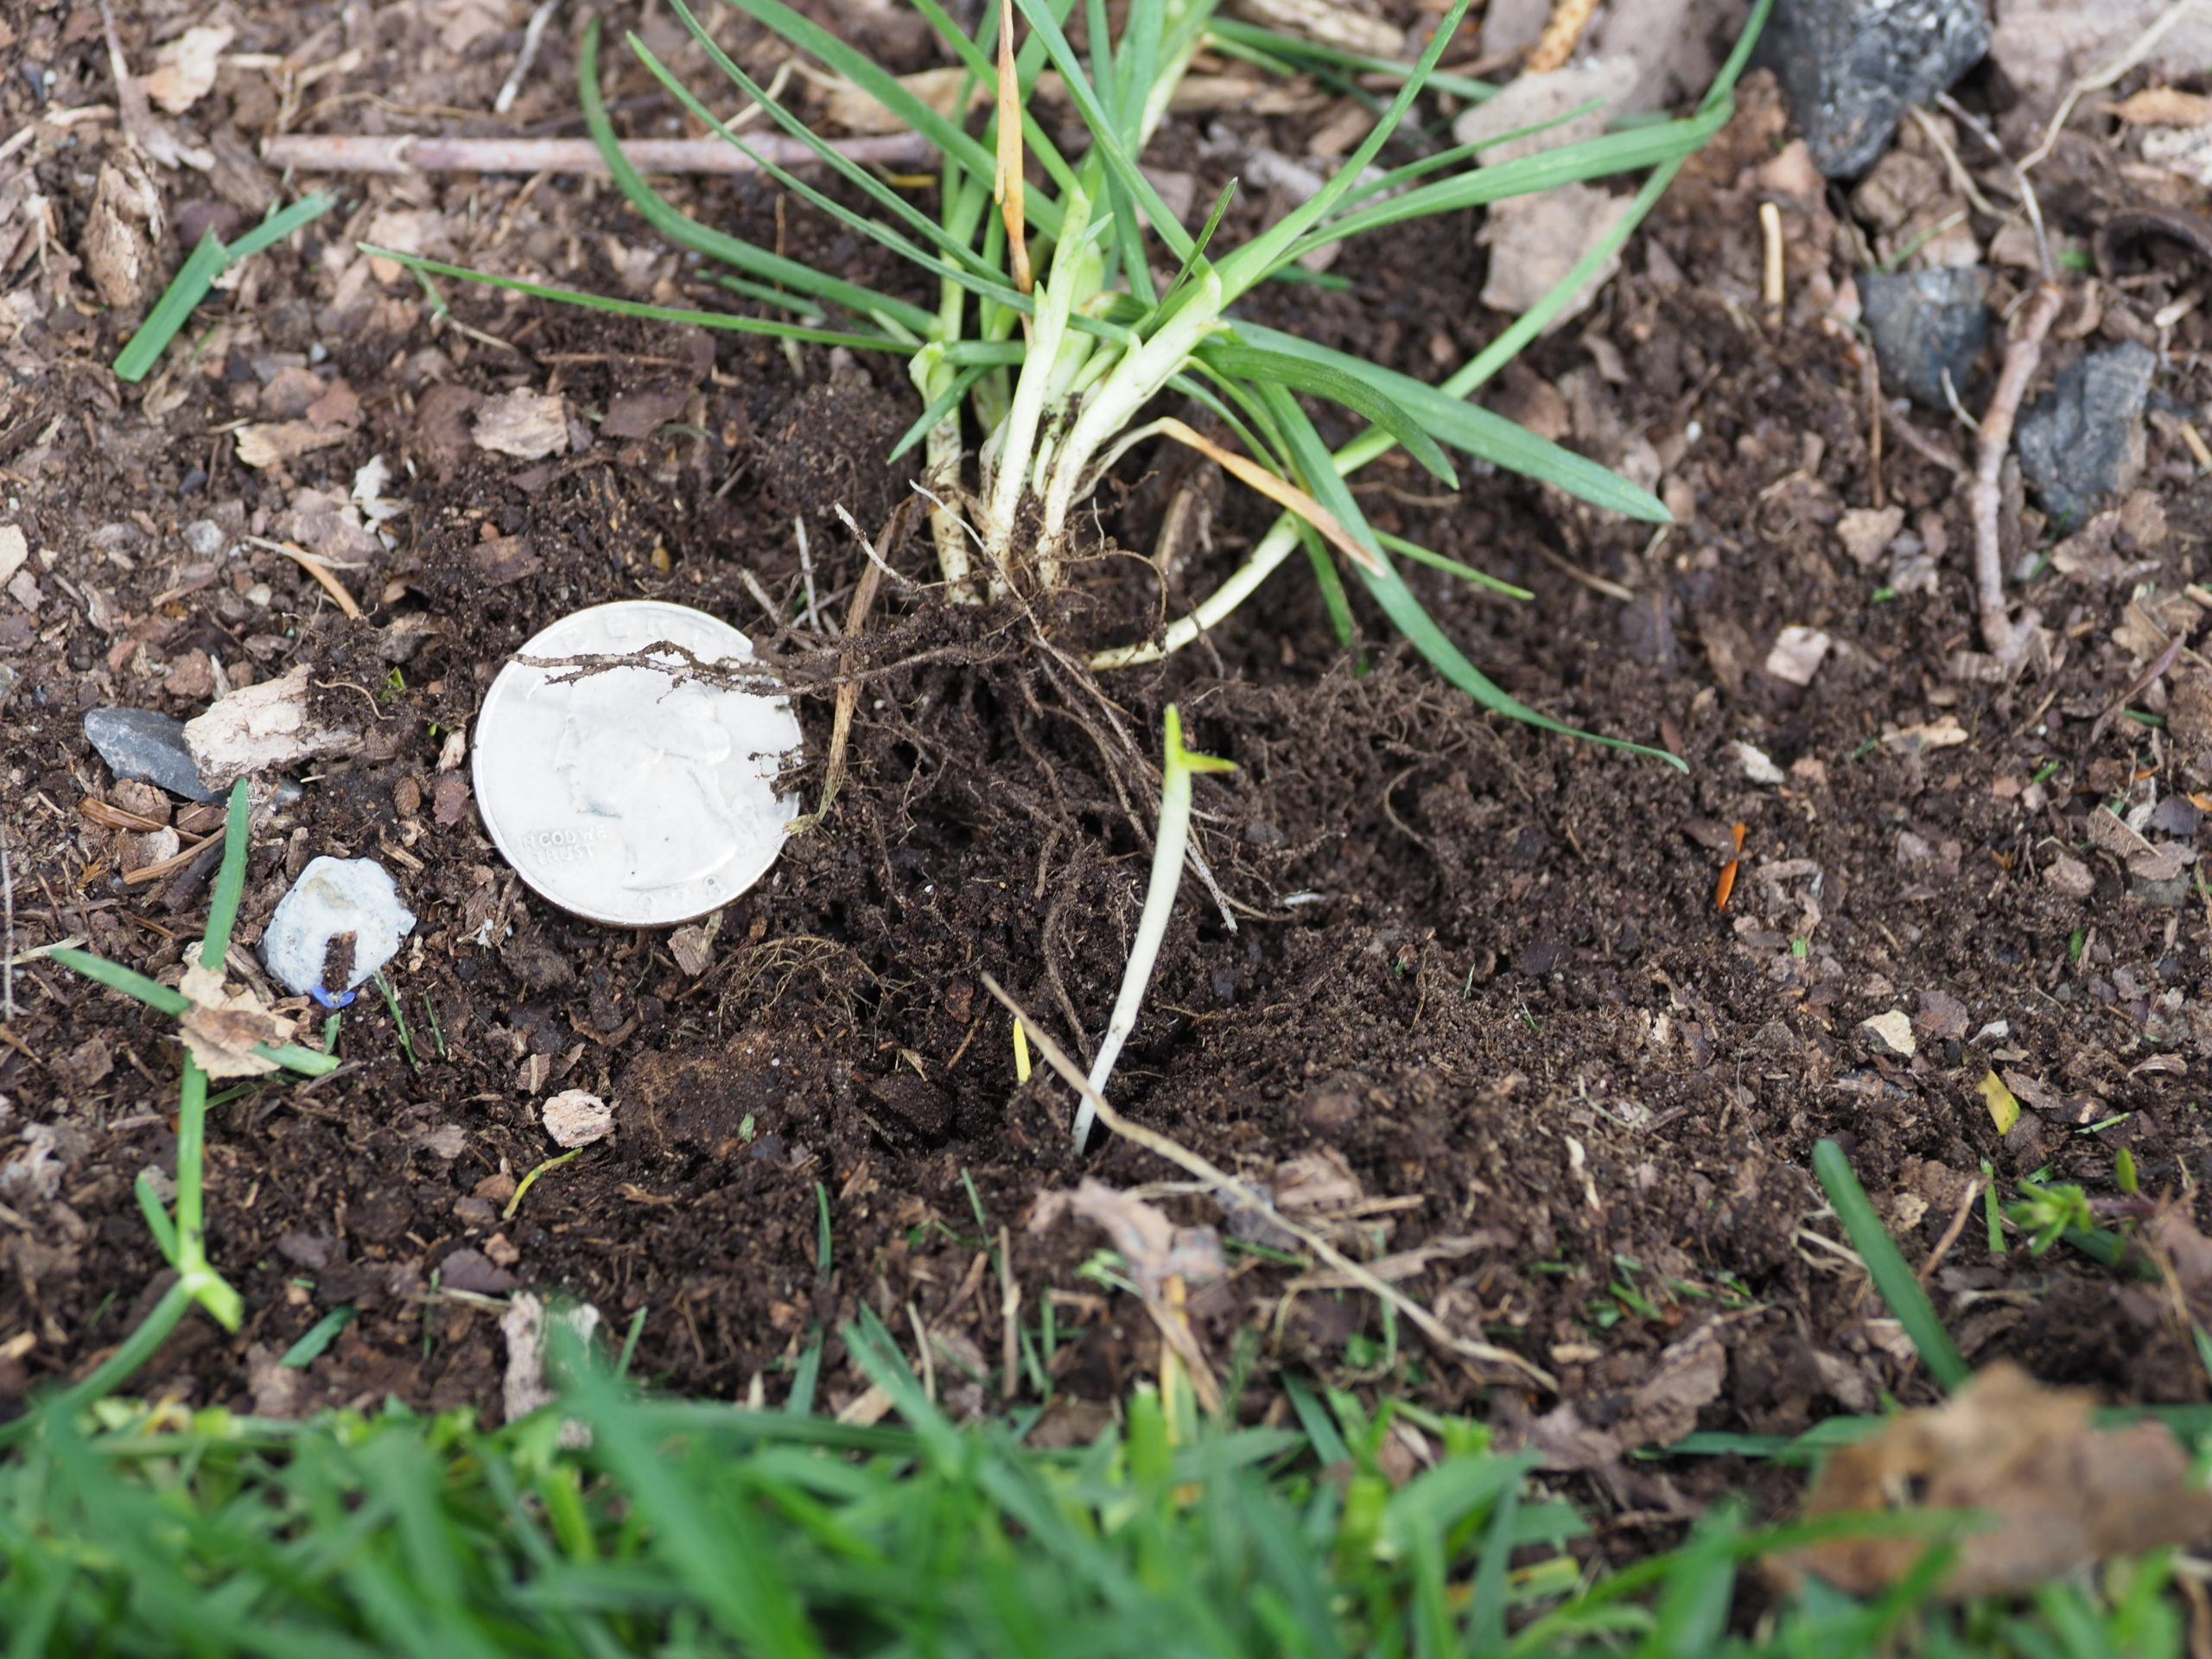 """When the grass """"sprig"""" above the quarter is pulled up it reveals not just its root system by the white-colored rhizome (about an inch to the right of the quarter) that ventured from the lawn into the landscape bed starting a new plant. Edging and pulling can simply remove these volunteers."""